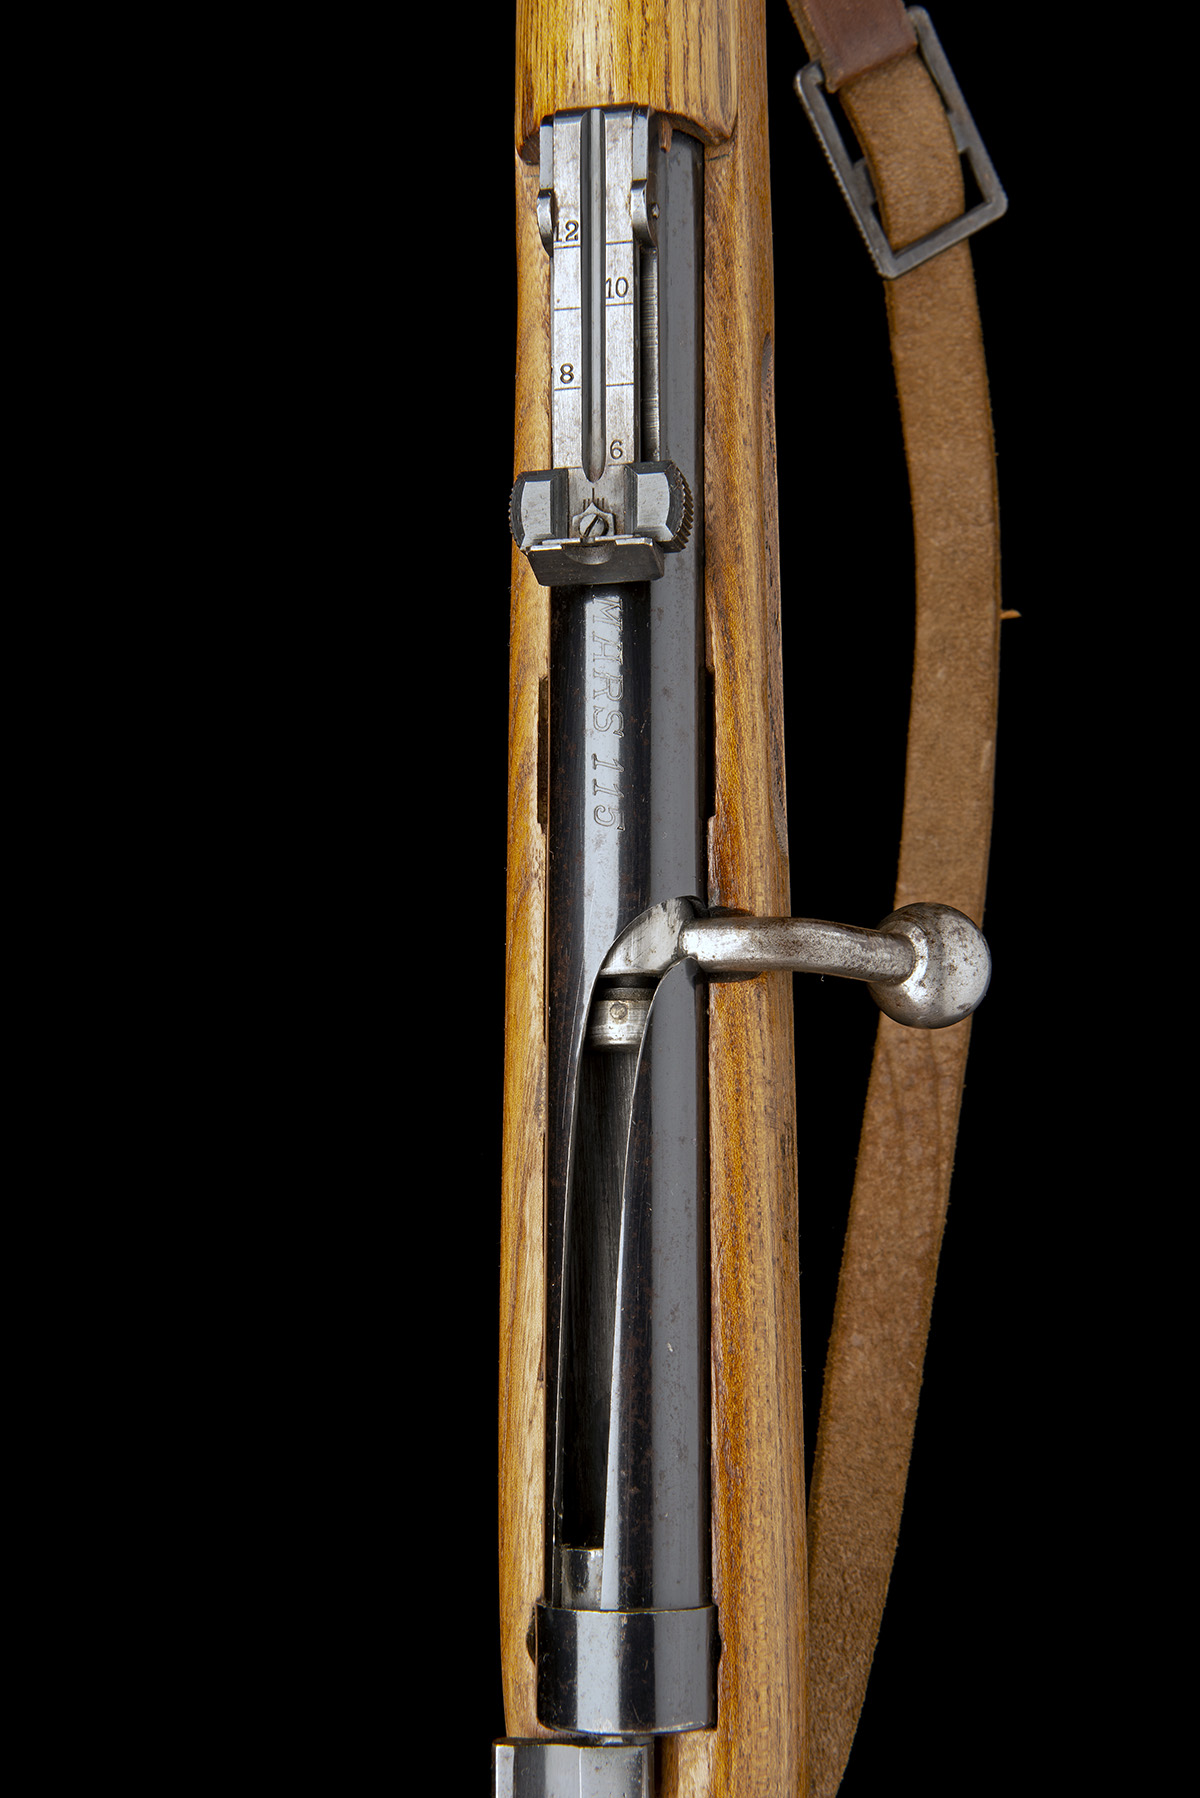 Lot 107 - A 4.4mm (BB) REPEATING AIR-RIFLE SIGNED MARS, MODEL '115 MILITARY TRAINER', serial no. 841155, circa